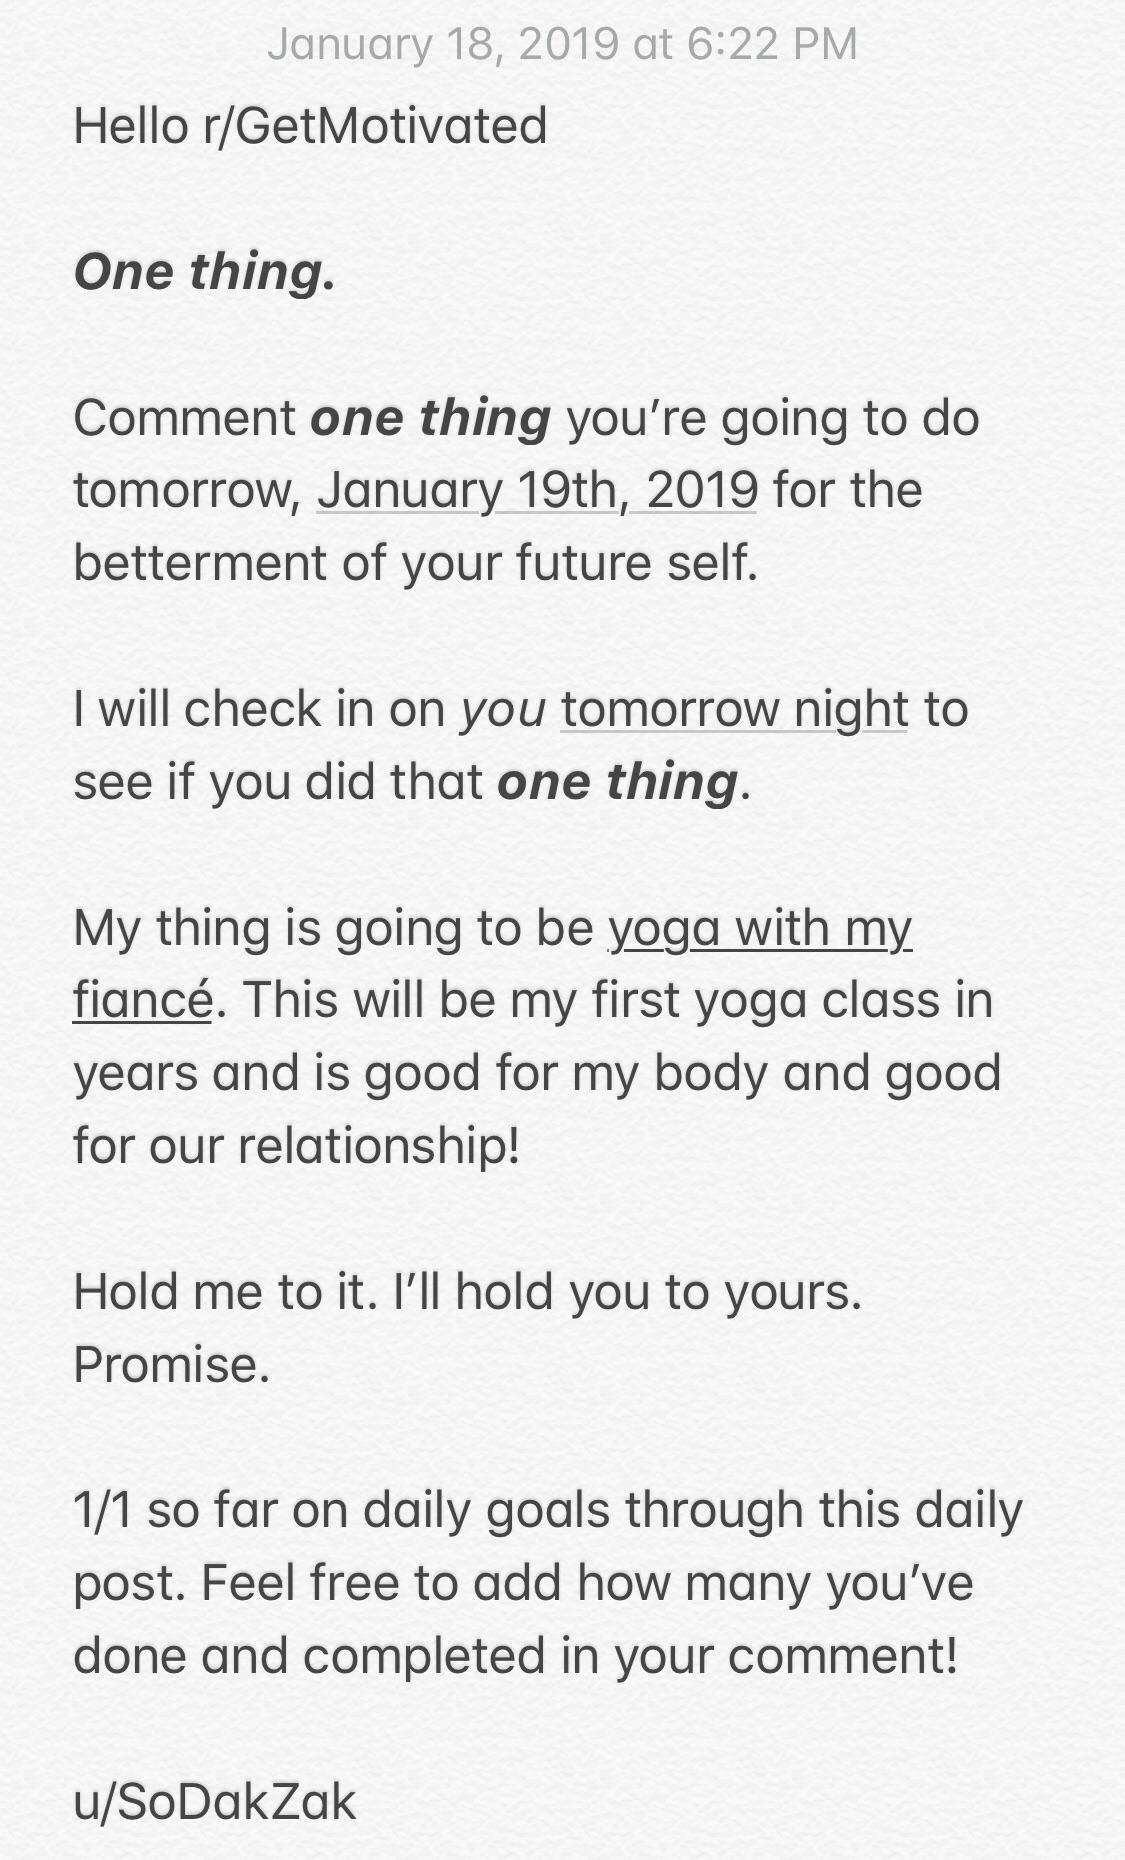 [Image] Let's do this again! If you're new, make a promise to yourself in the comments for tomorrow. If you did it yesterday, you're already on track toward your best self!